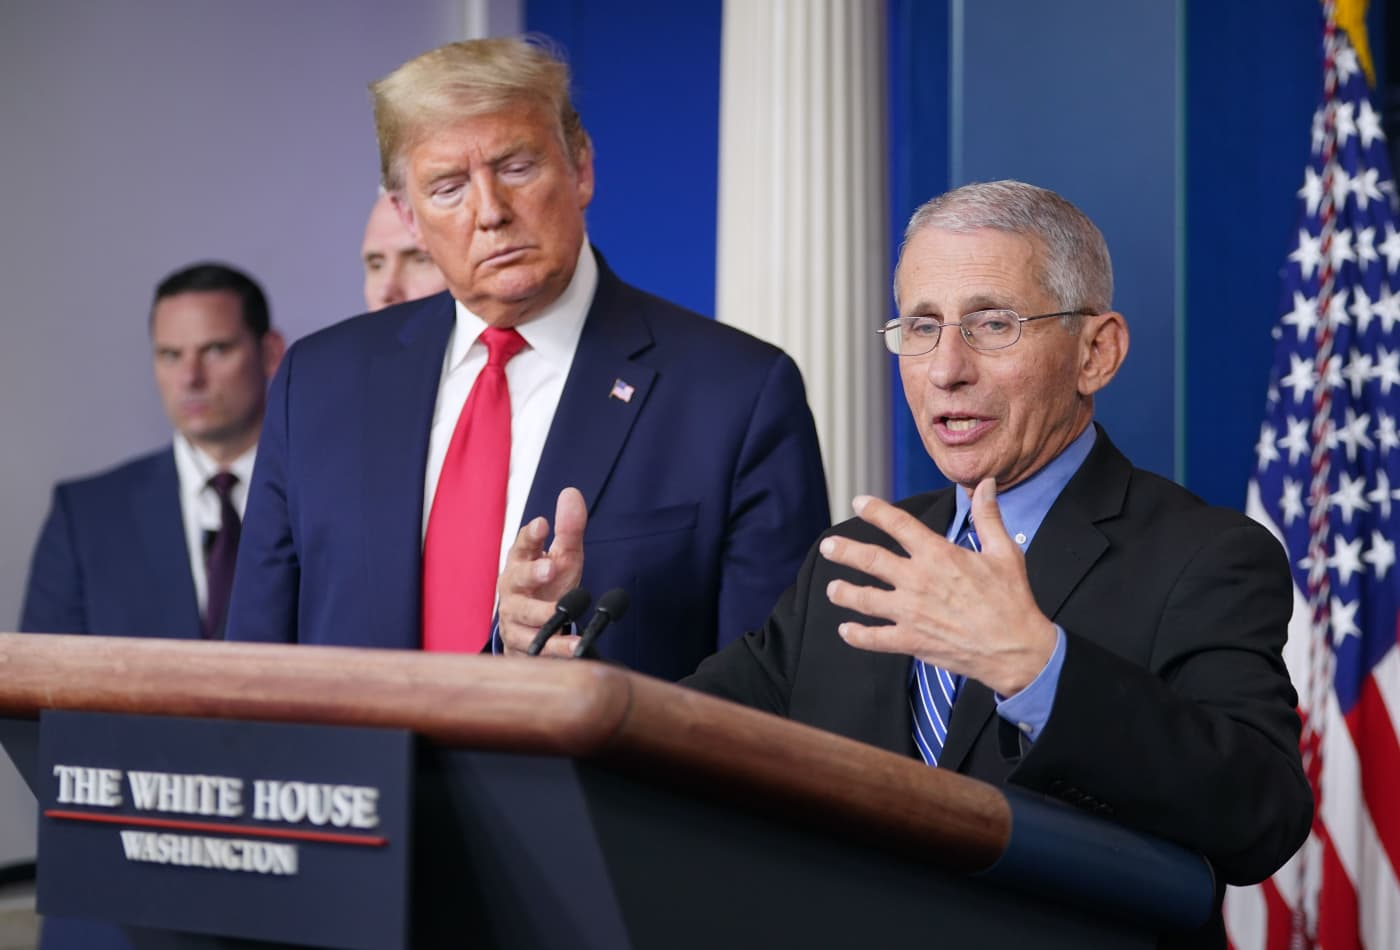 Coronavirus: White House health advisor Fauci says US needs to be prepared for second cycle